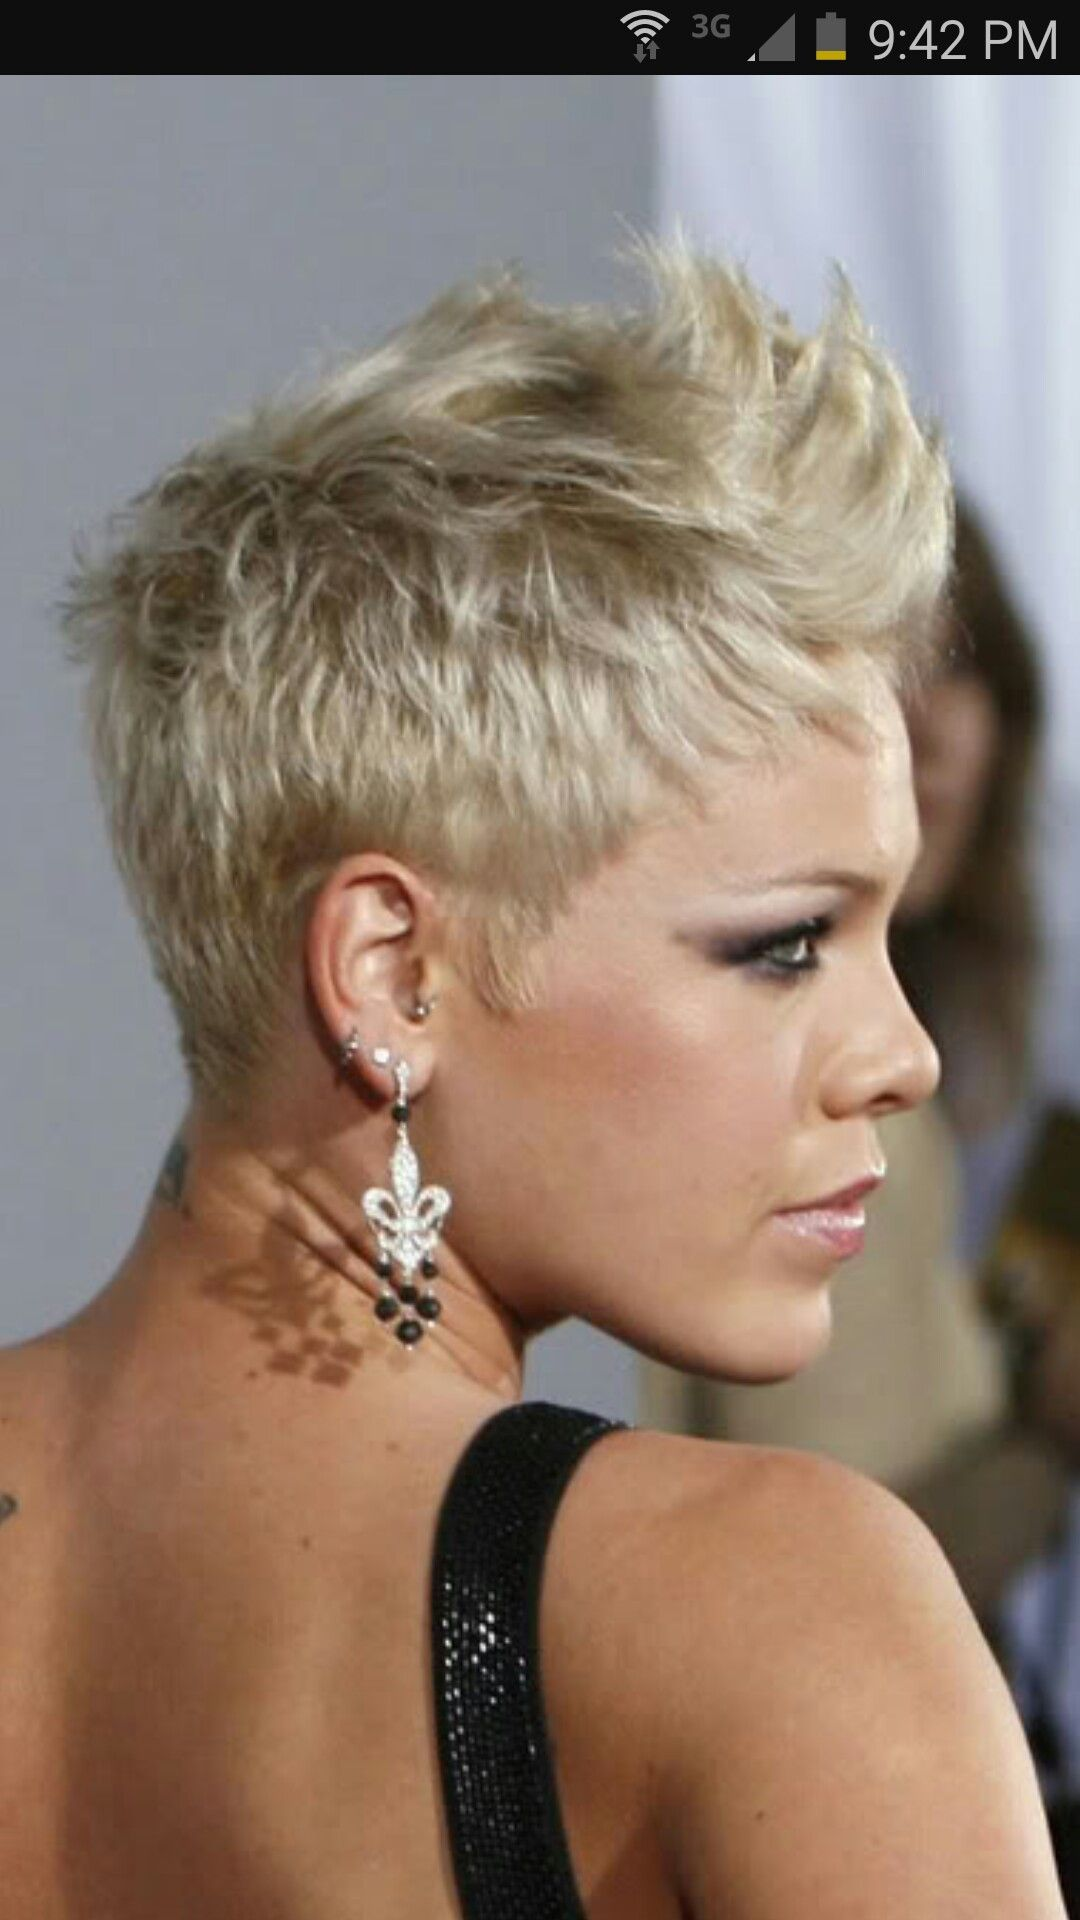 Pin By Jane Wright On Hair Pink Haircut Pink Singer Hairstyles Short Hair Styles